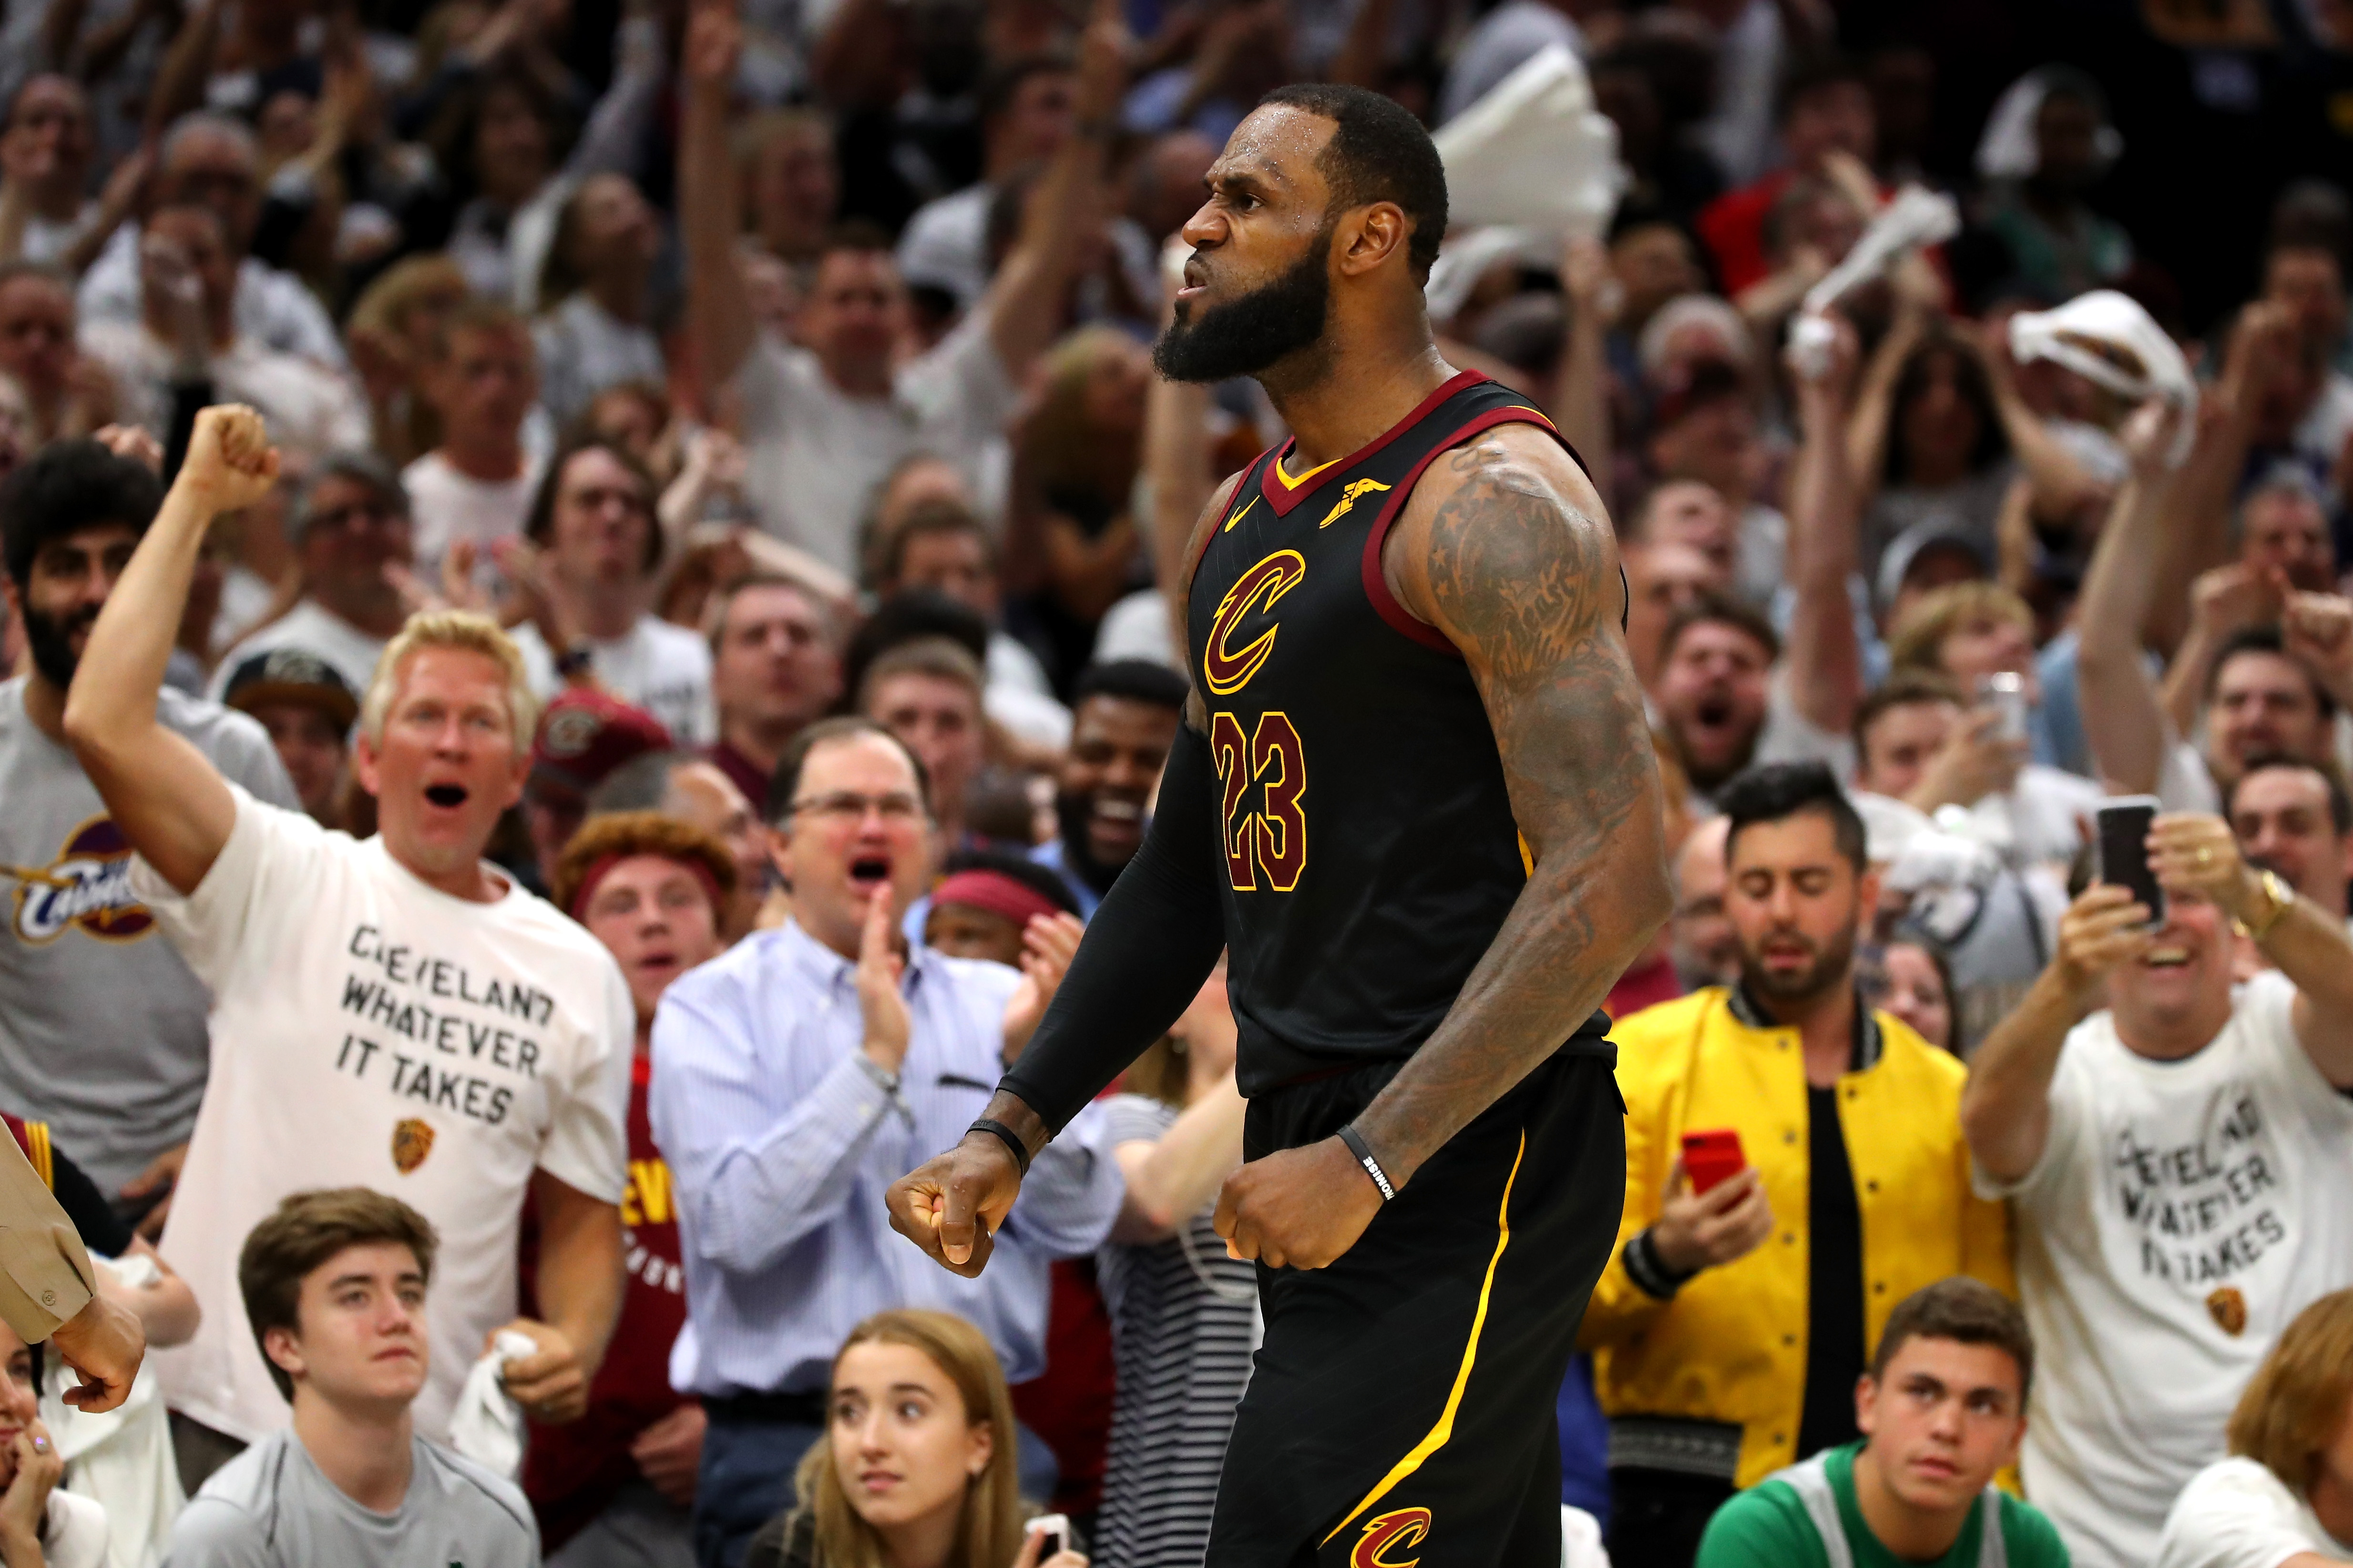 If LeBron James just played his final game in Cleveland, how magnificent it was - The Blade